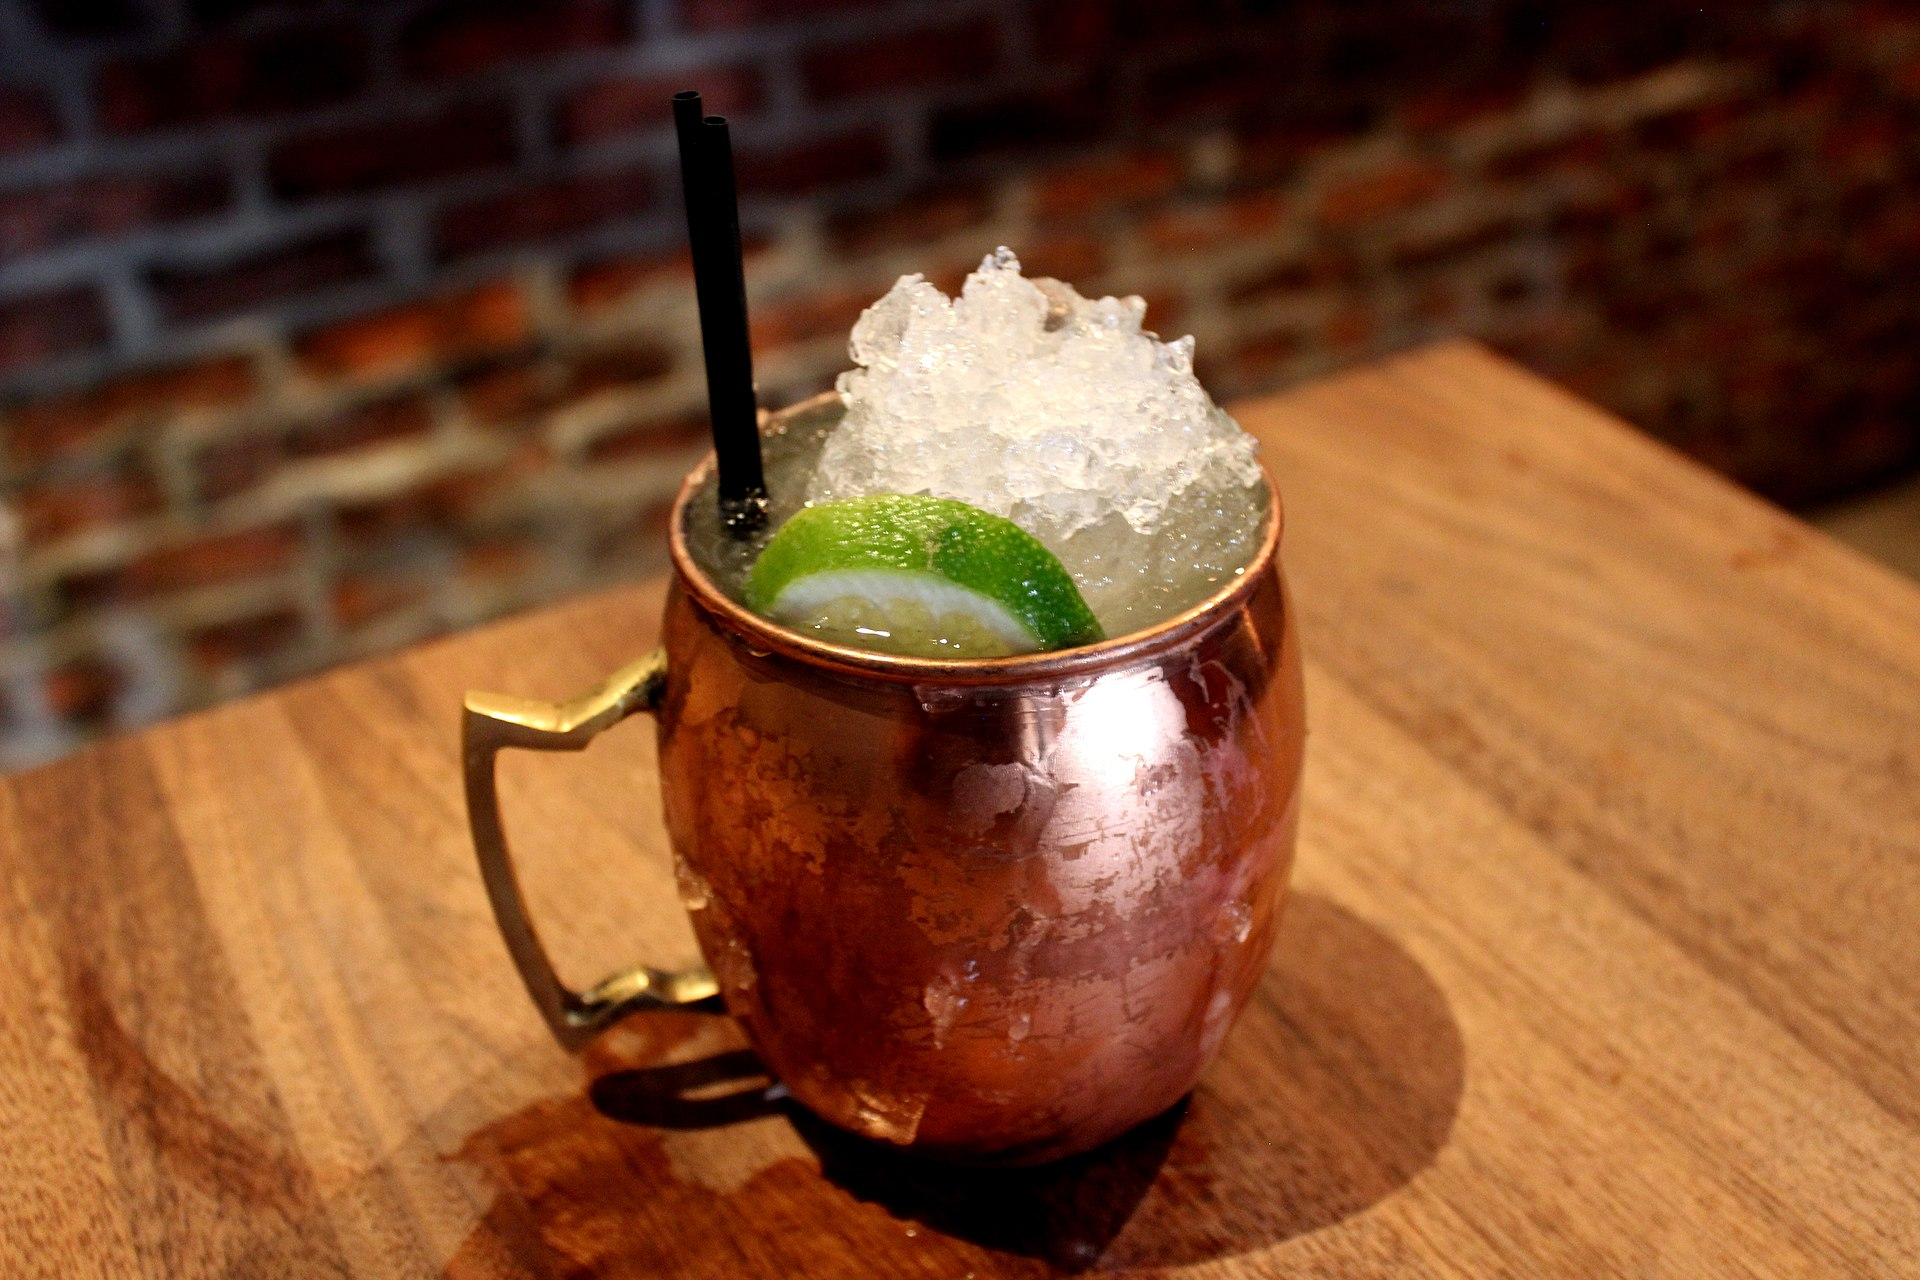 By Will Shenton - https://bevvy.co/cocktail/moscow-mule/gsp, CC BY-SA 3.0, on Wikimedia Commons